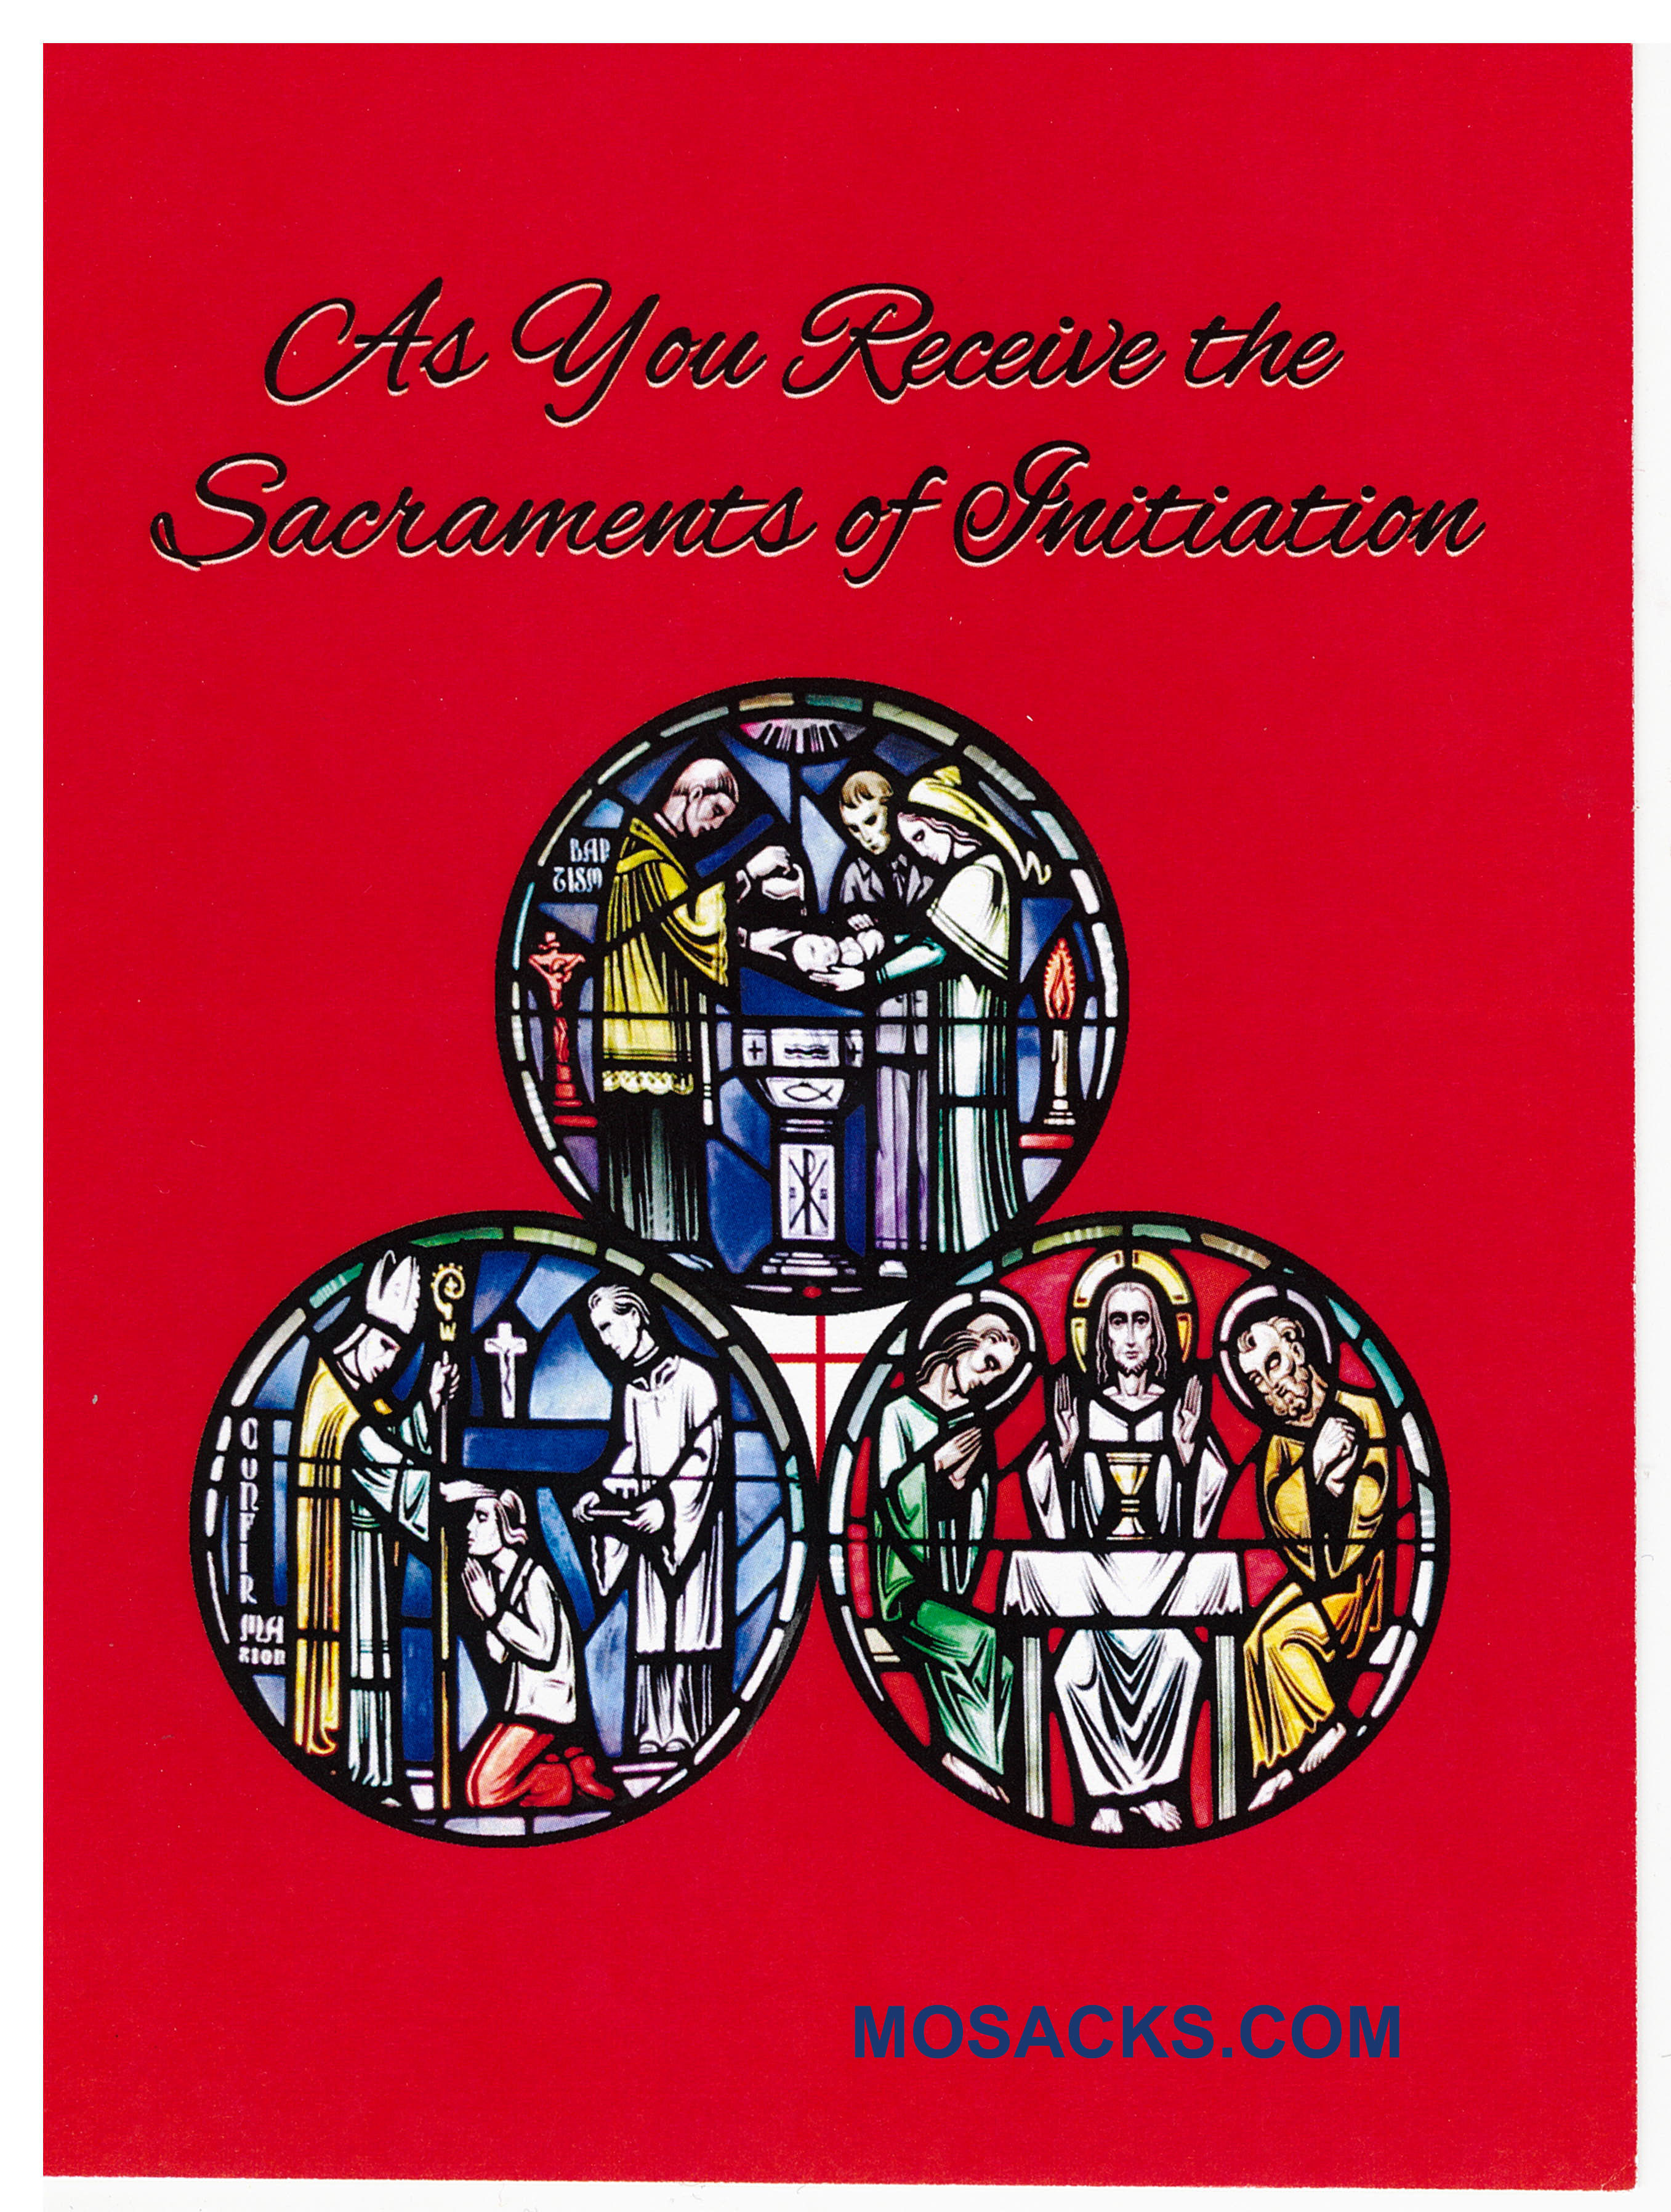 As You Receive The Sacraments Of Initiation Greeting Card -CA50083